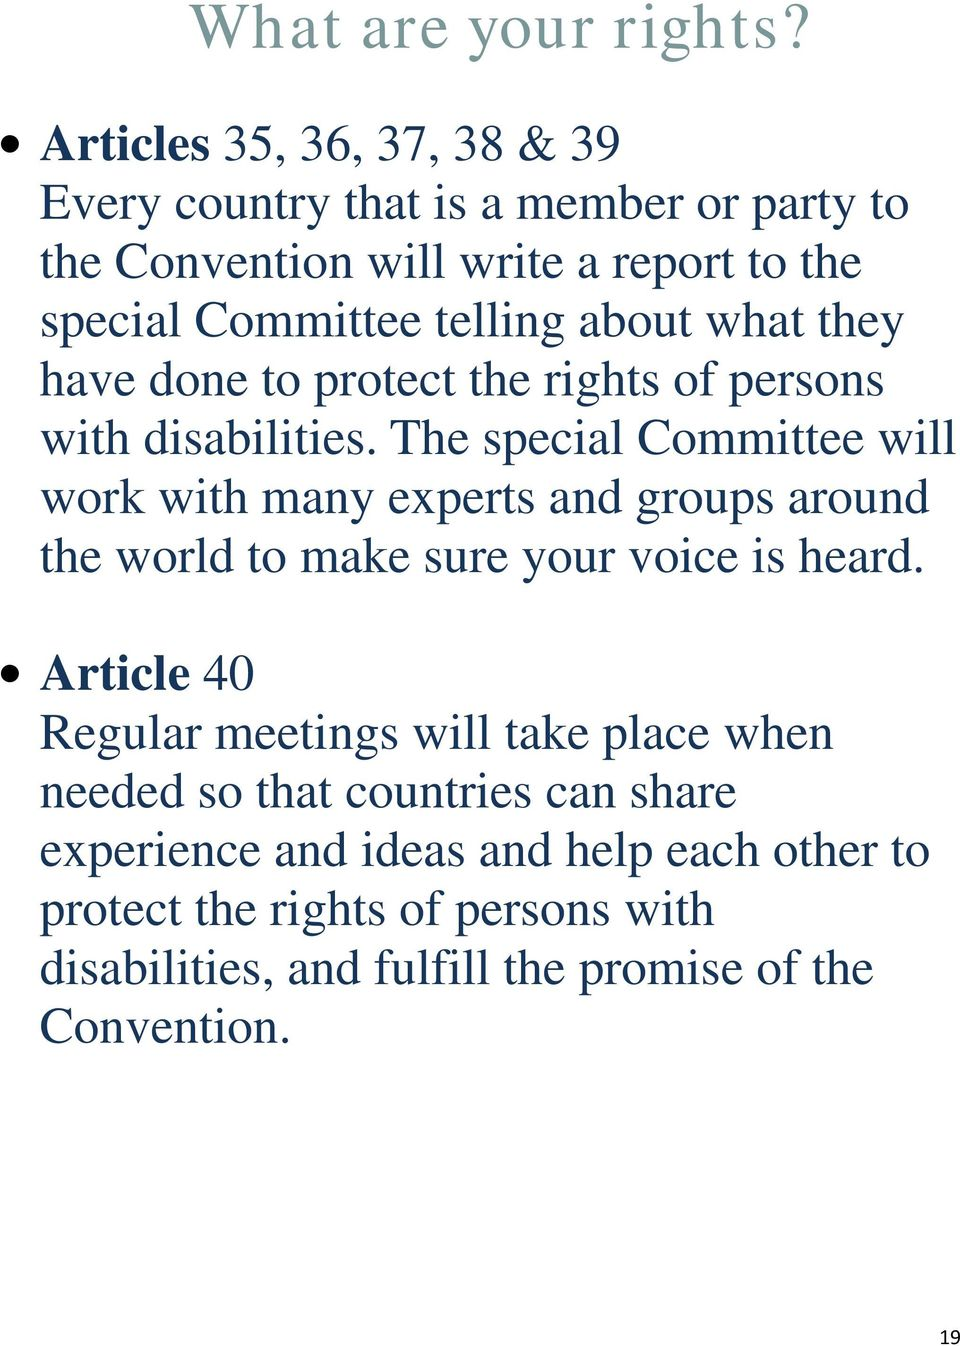 The special Committee will work with many experts and groups around the world to make sure your voice is heard.